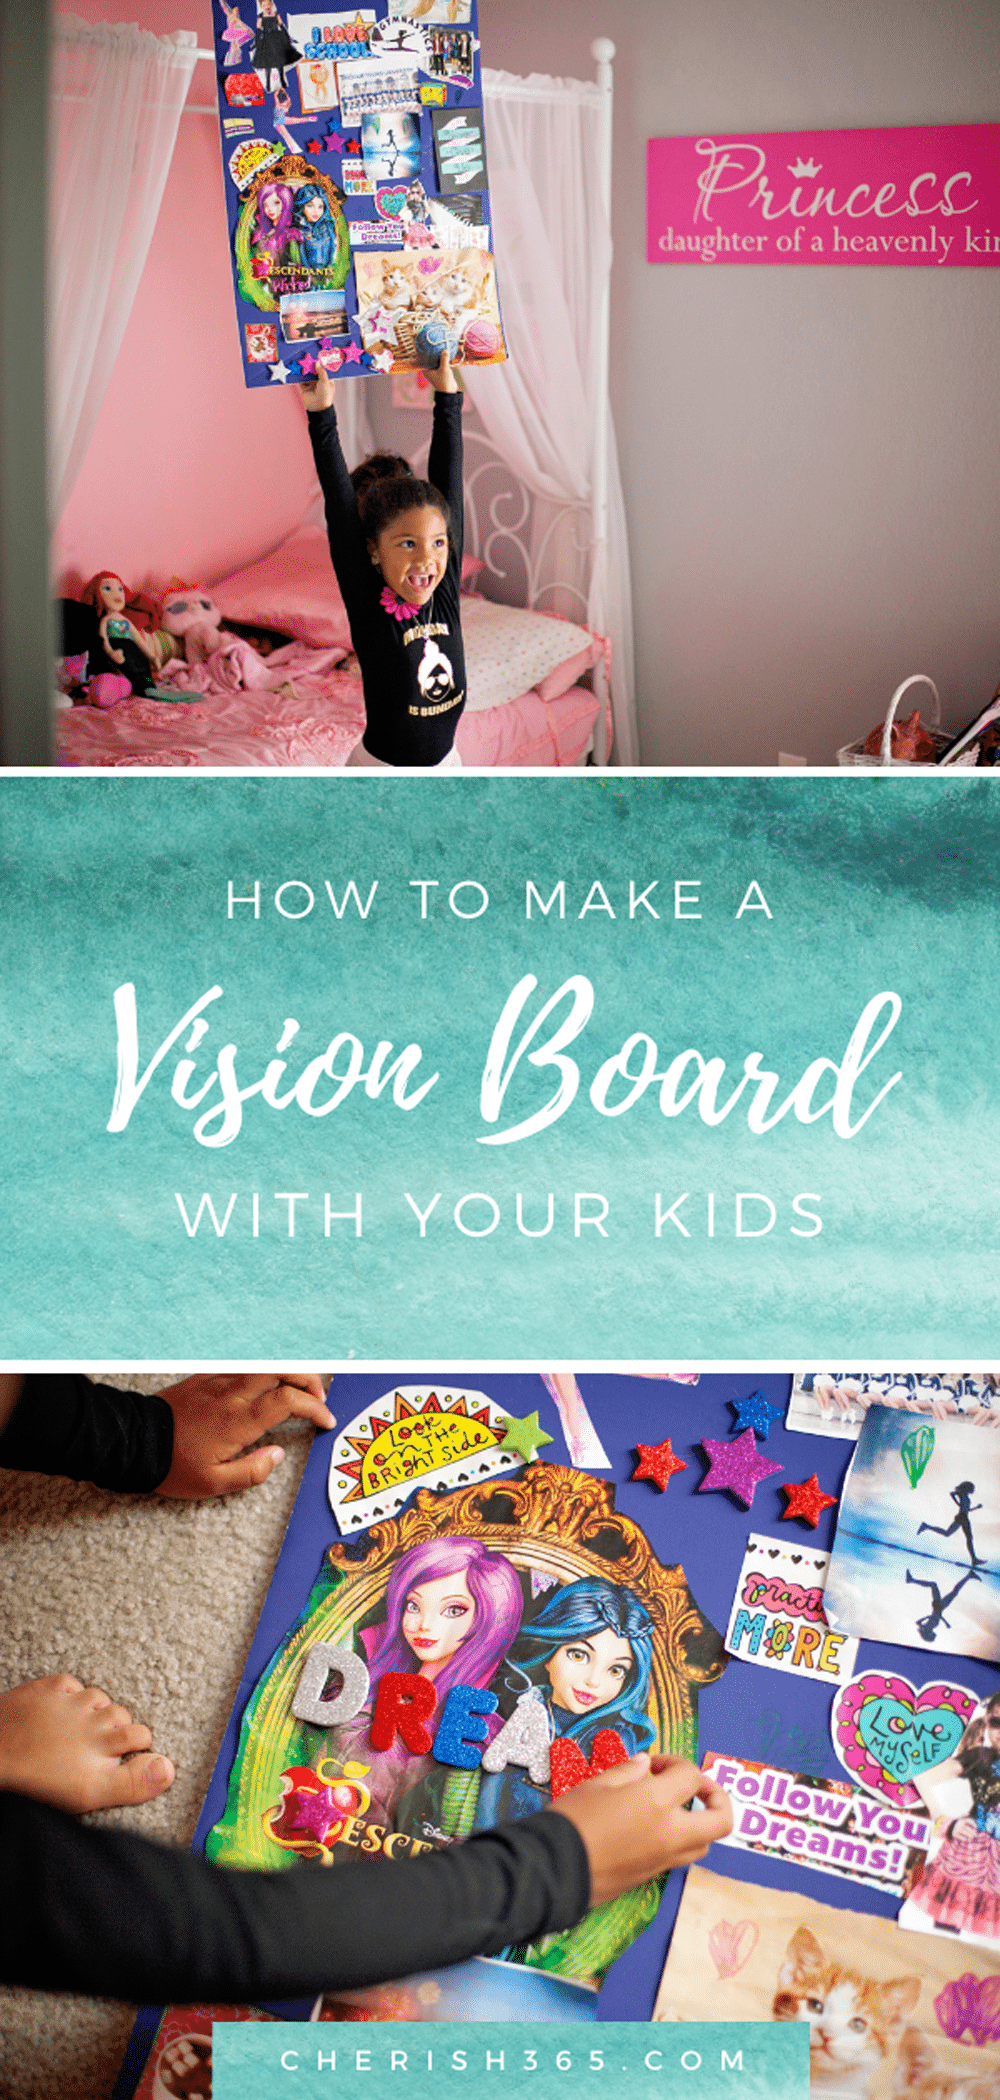 How to Help Your Child Follow Their Dreams by Making a Vision Board